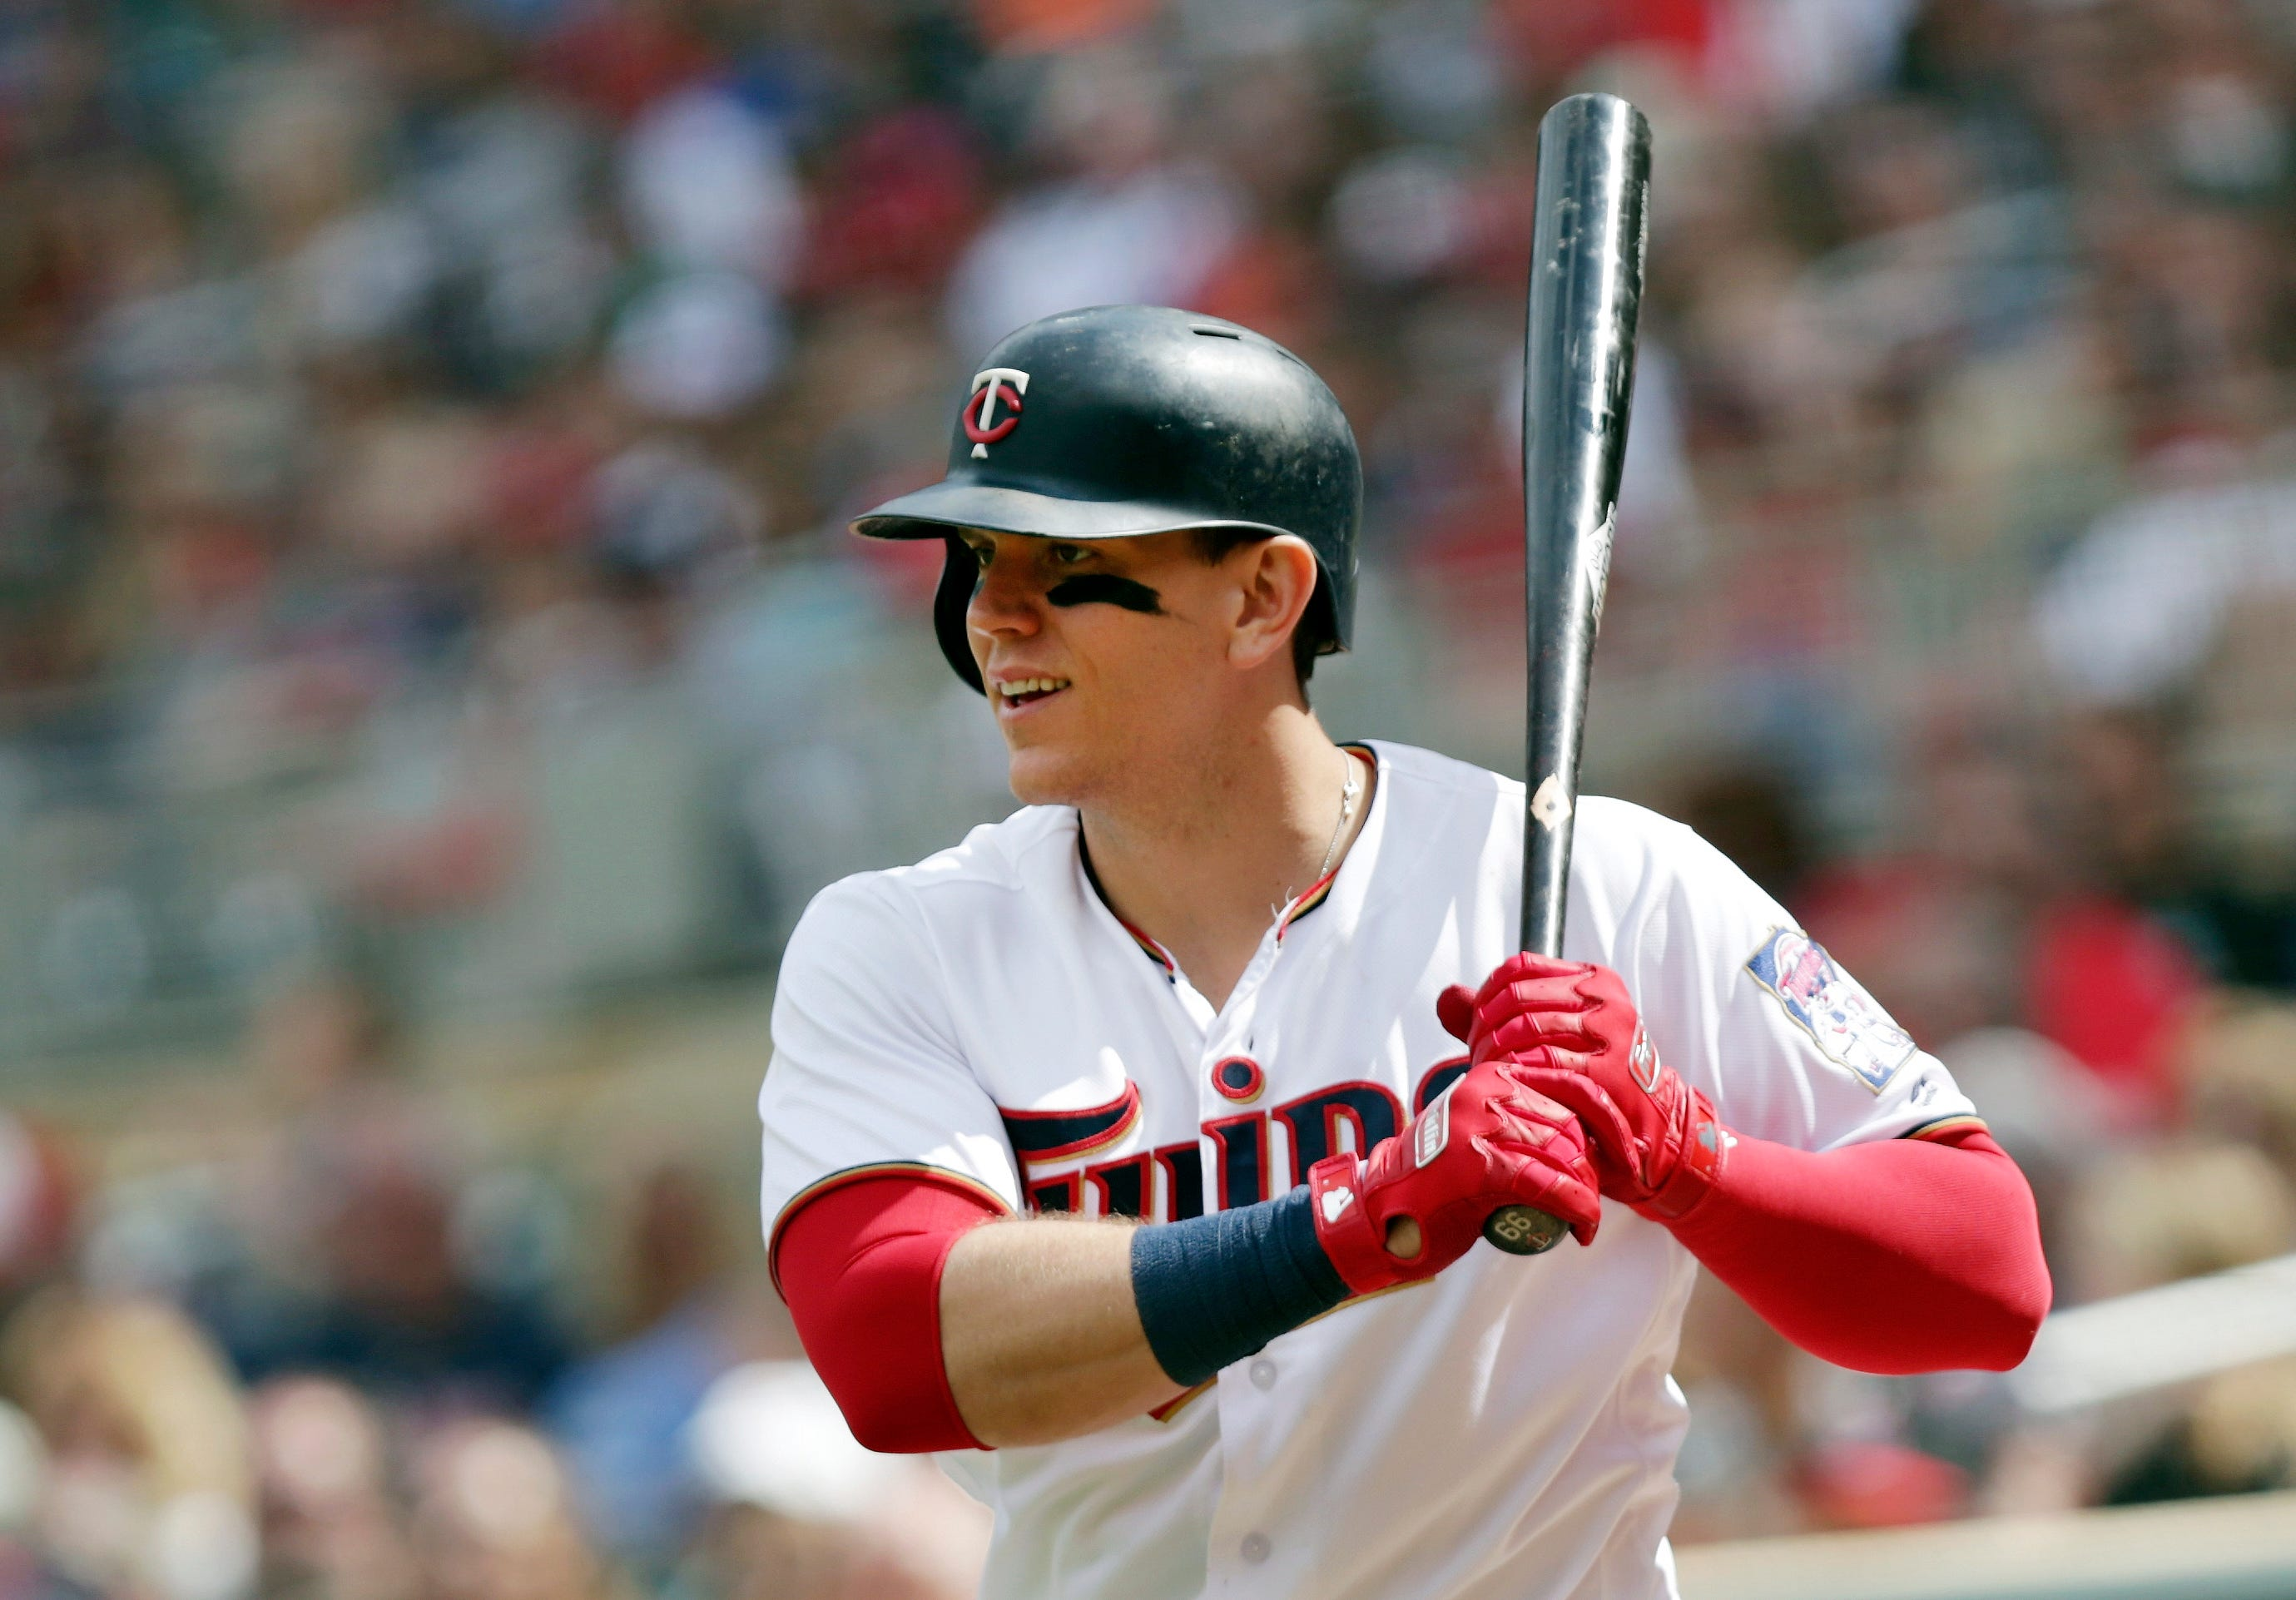 1B Logan Morrison agrees to minor league deal with Yankees